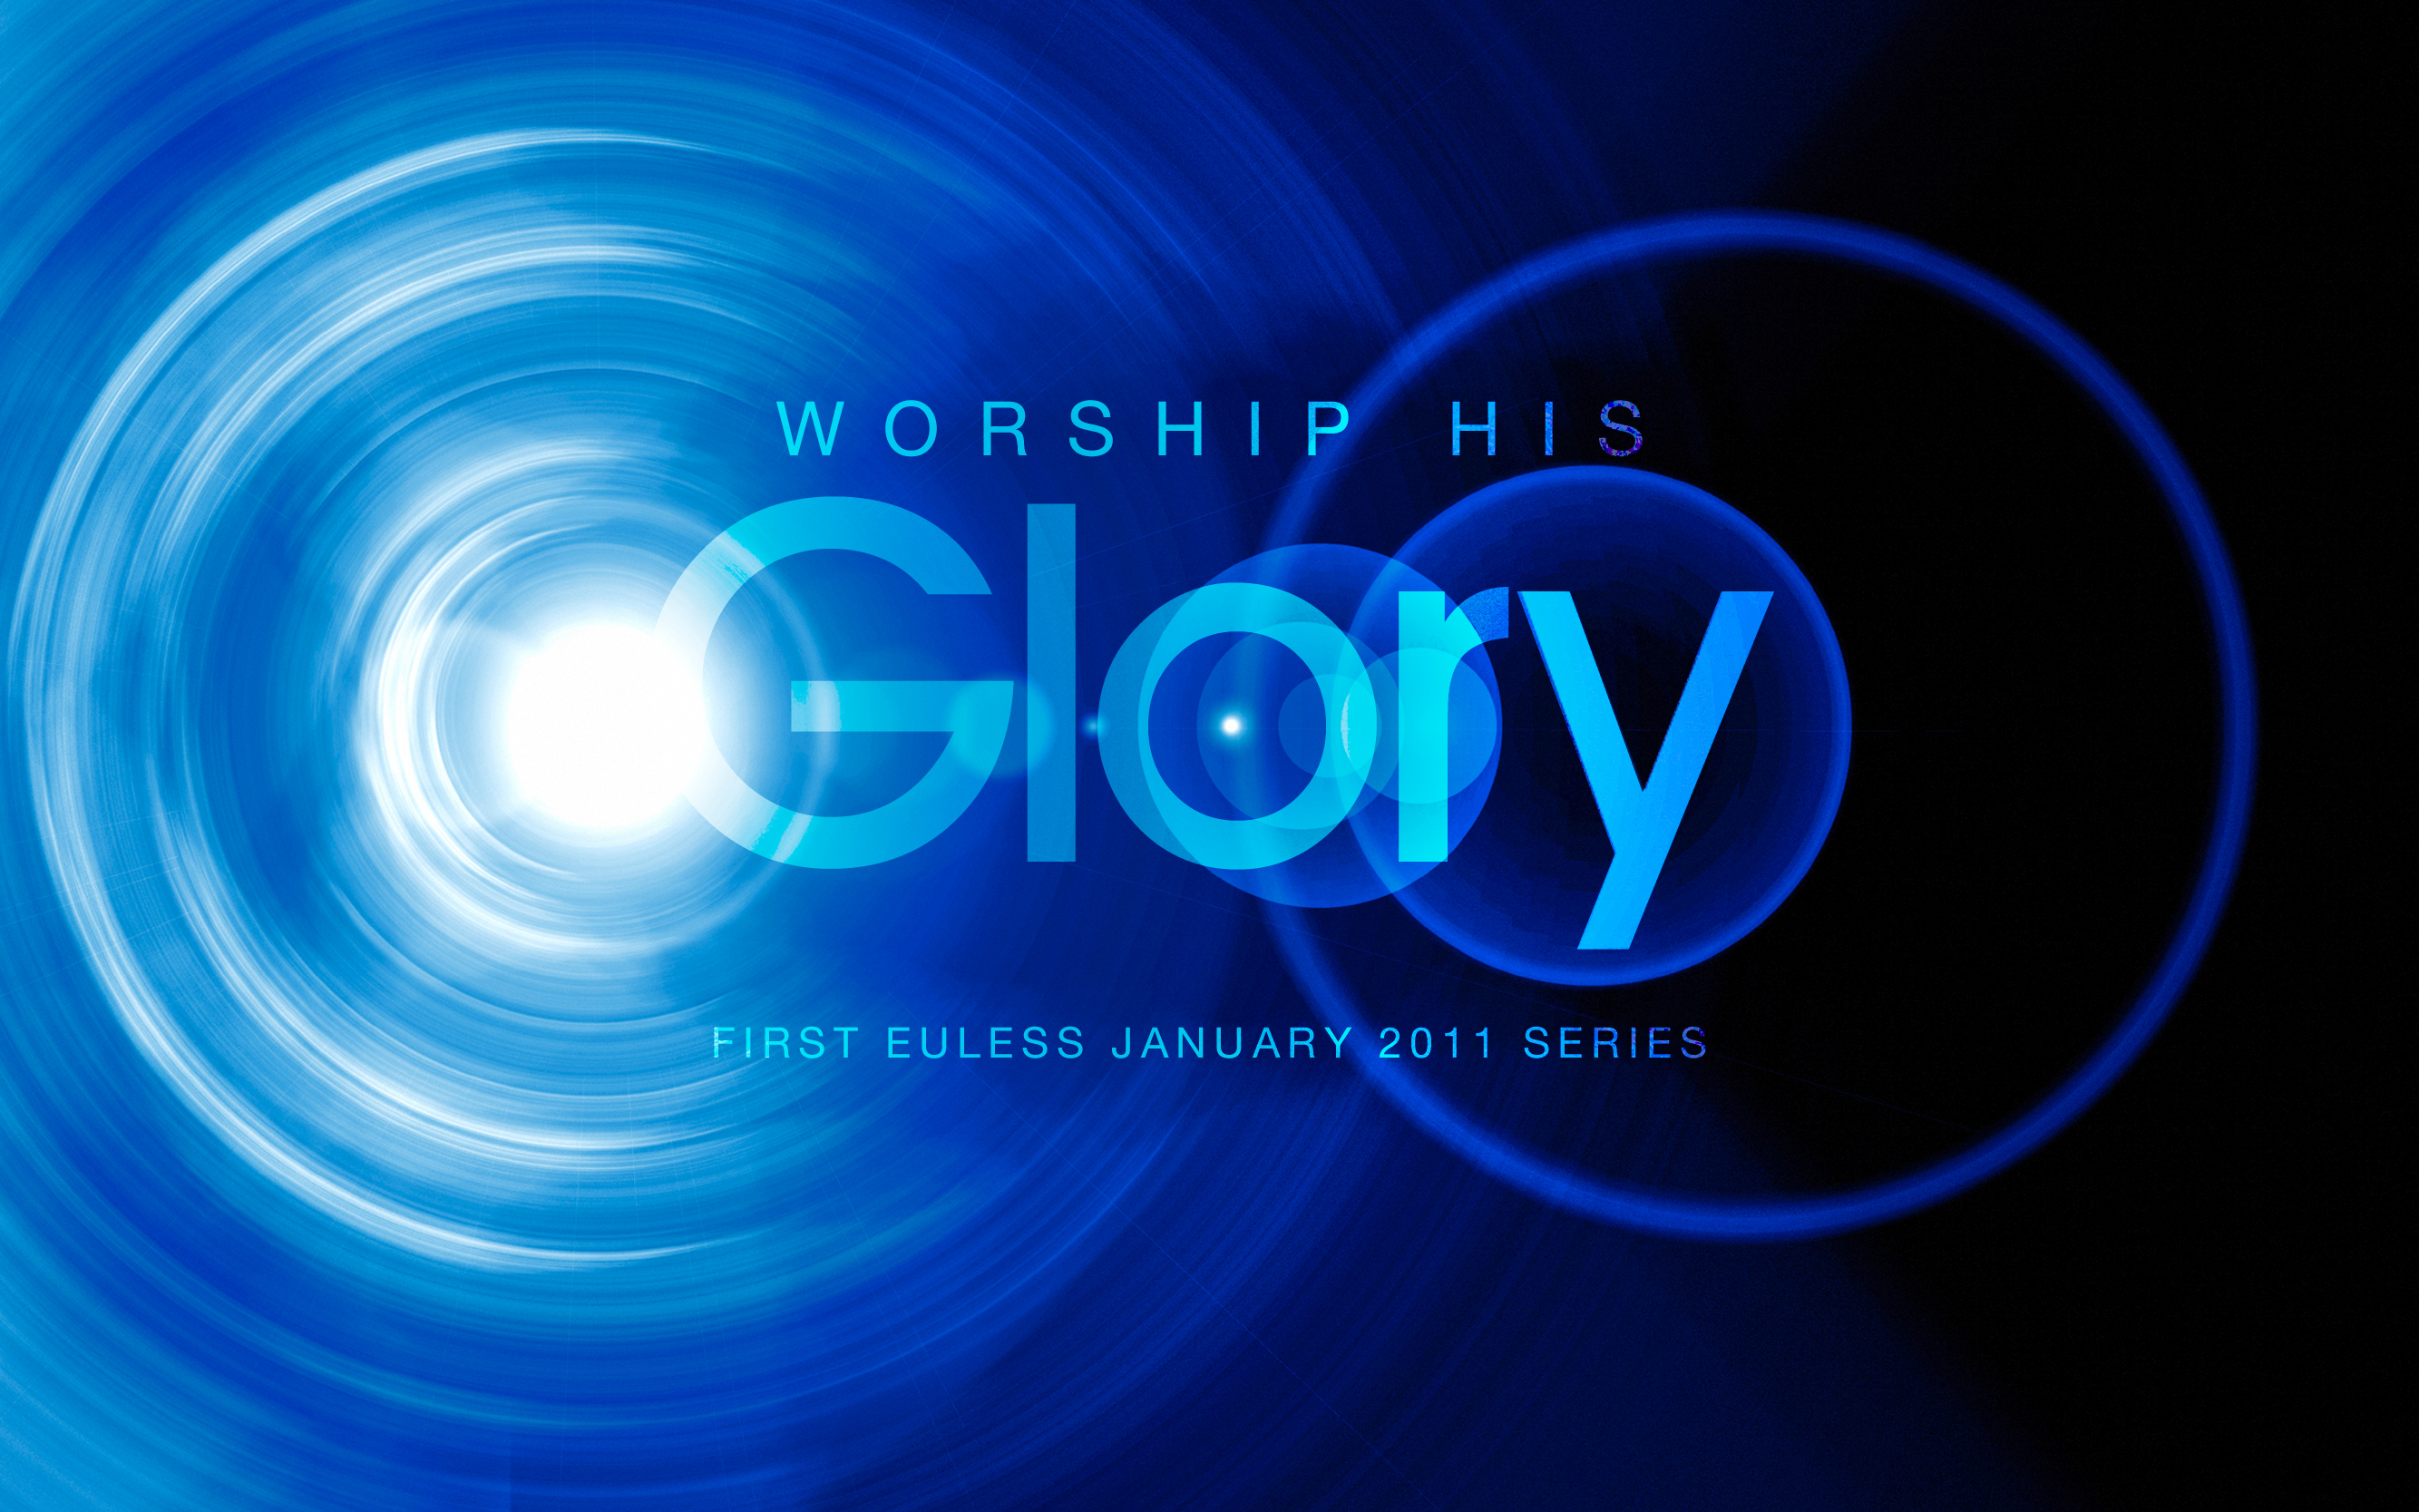 Christian Praise And Worship Backgrounds Christian graphic worship 2667x1667